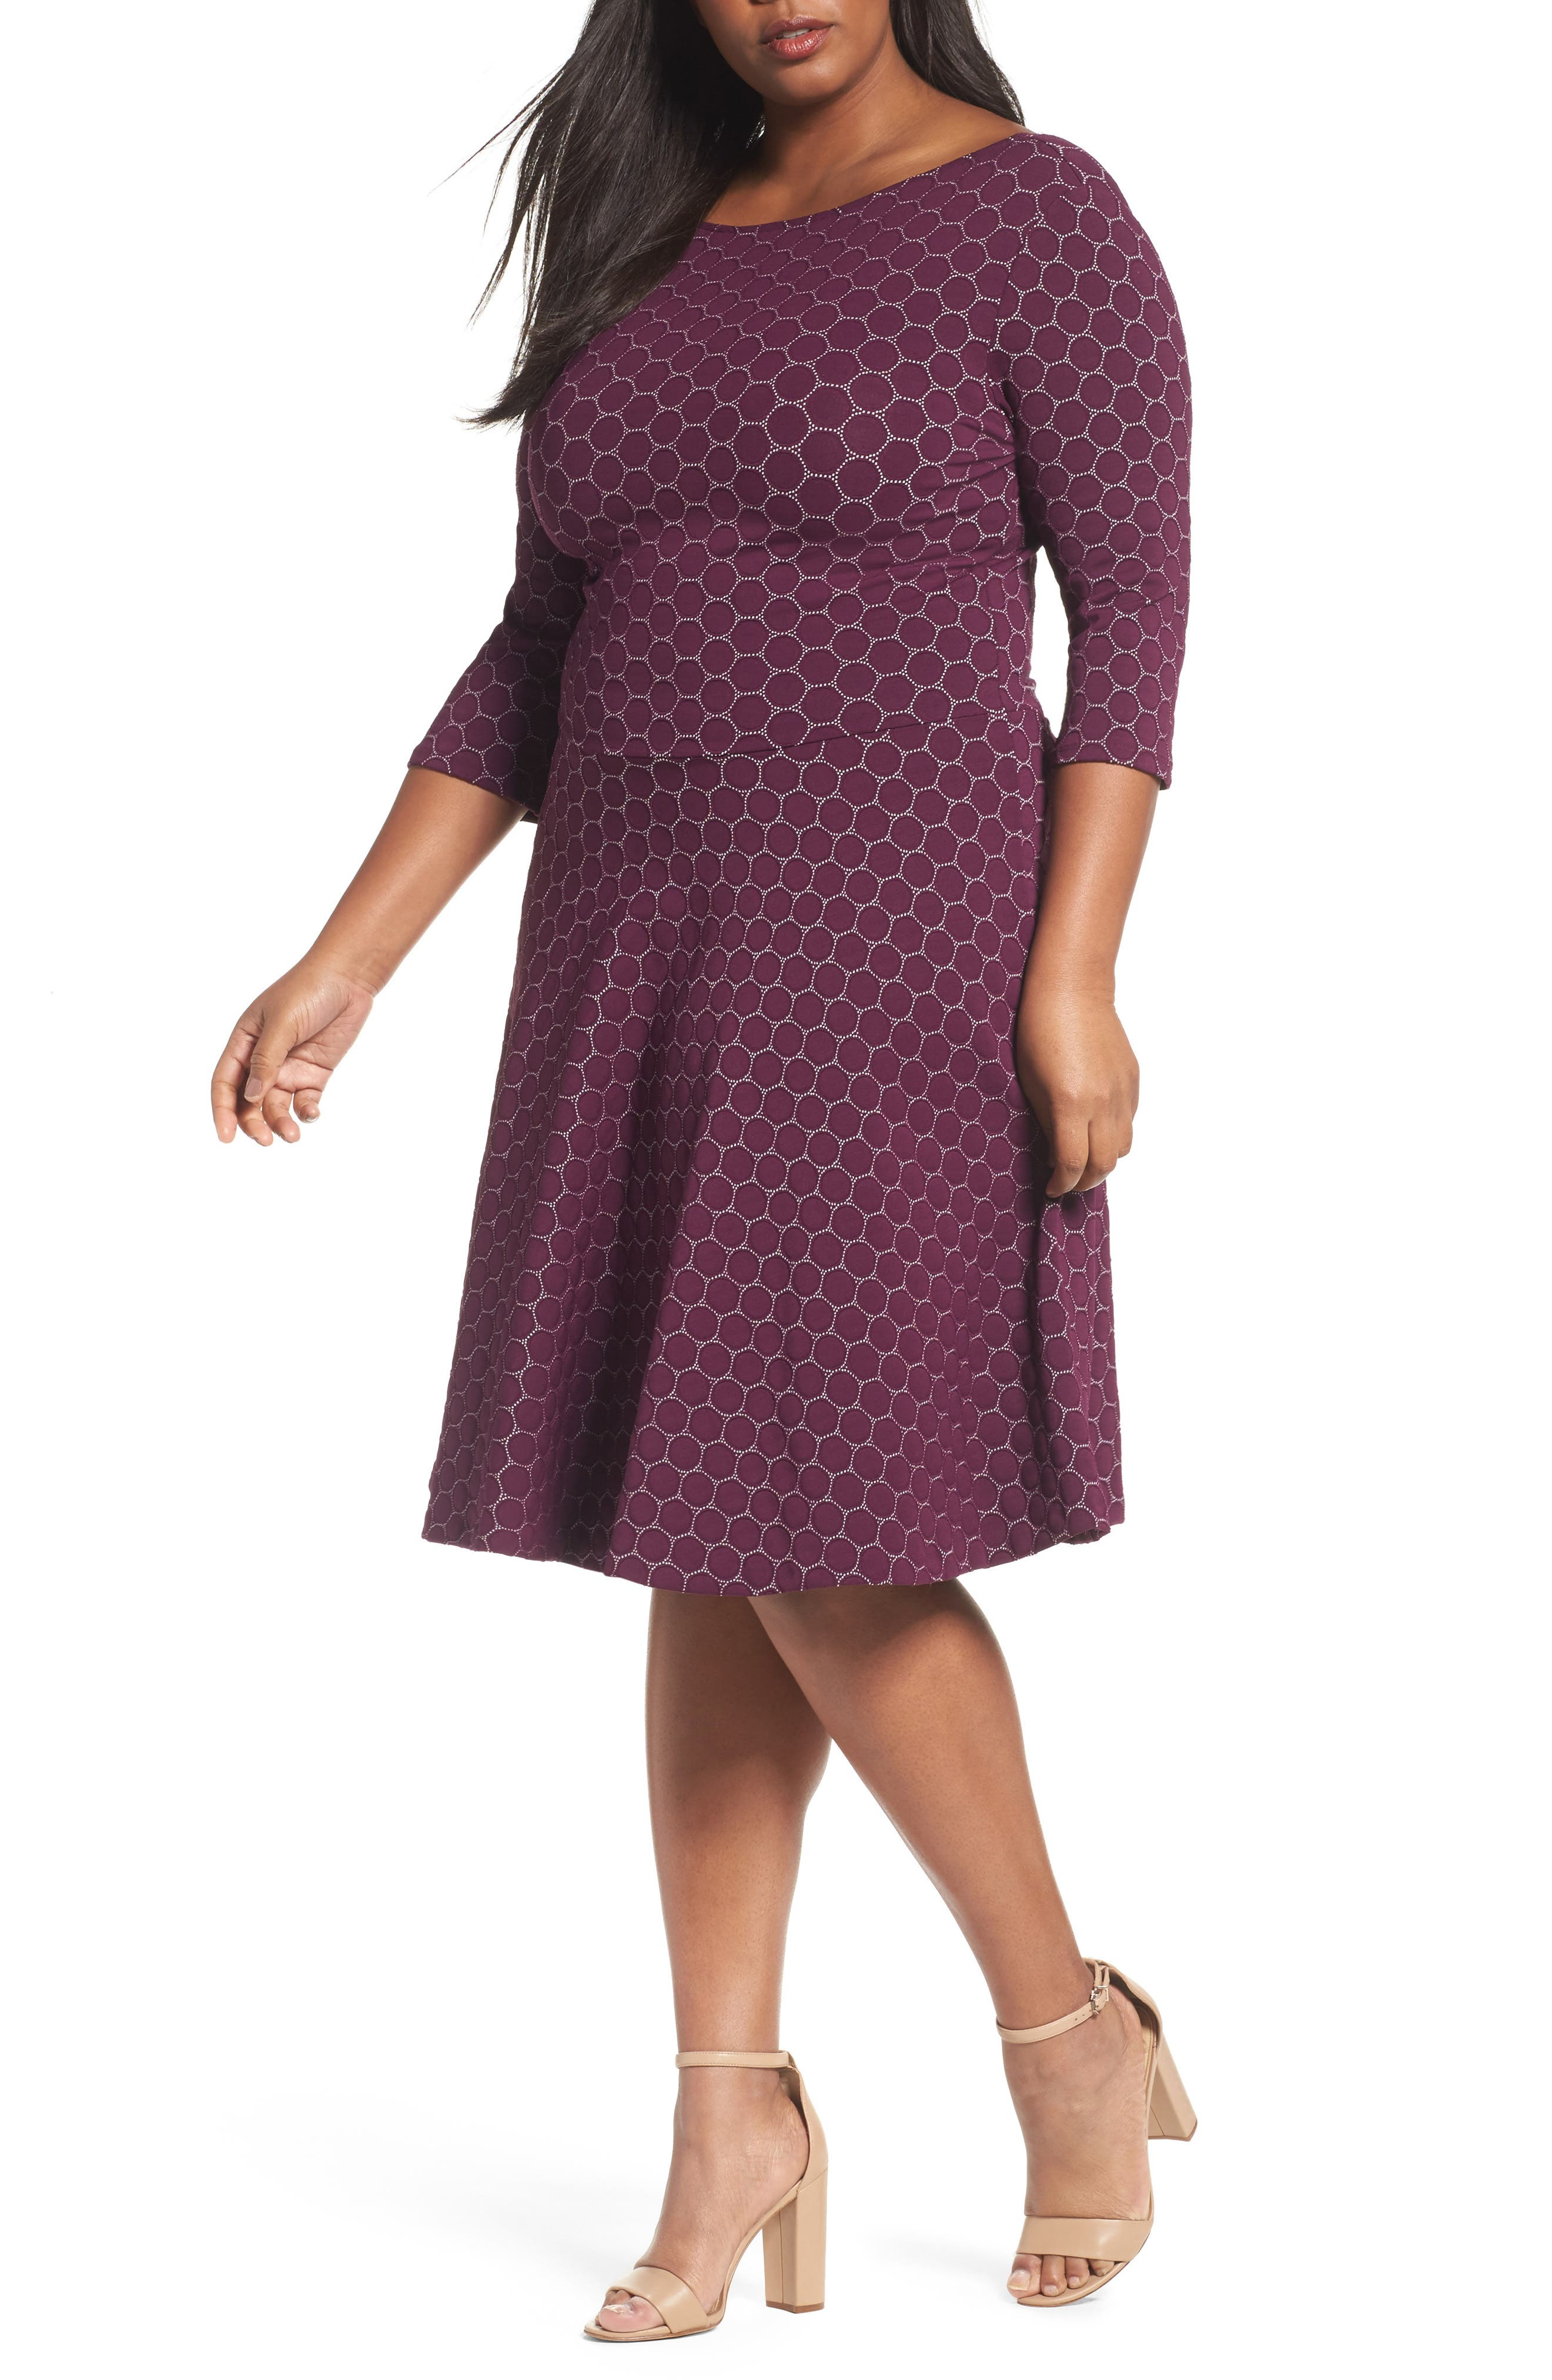 Alternate Image 1 Selected - Leota Circle Knit Fit & Flare Dress (Plus Size)